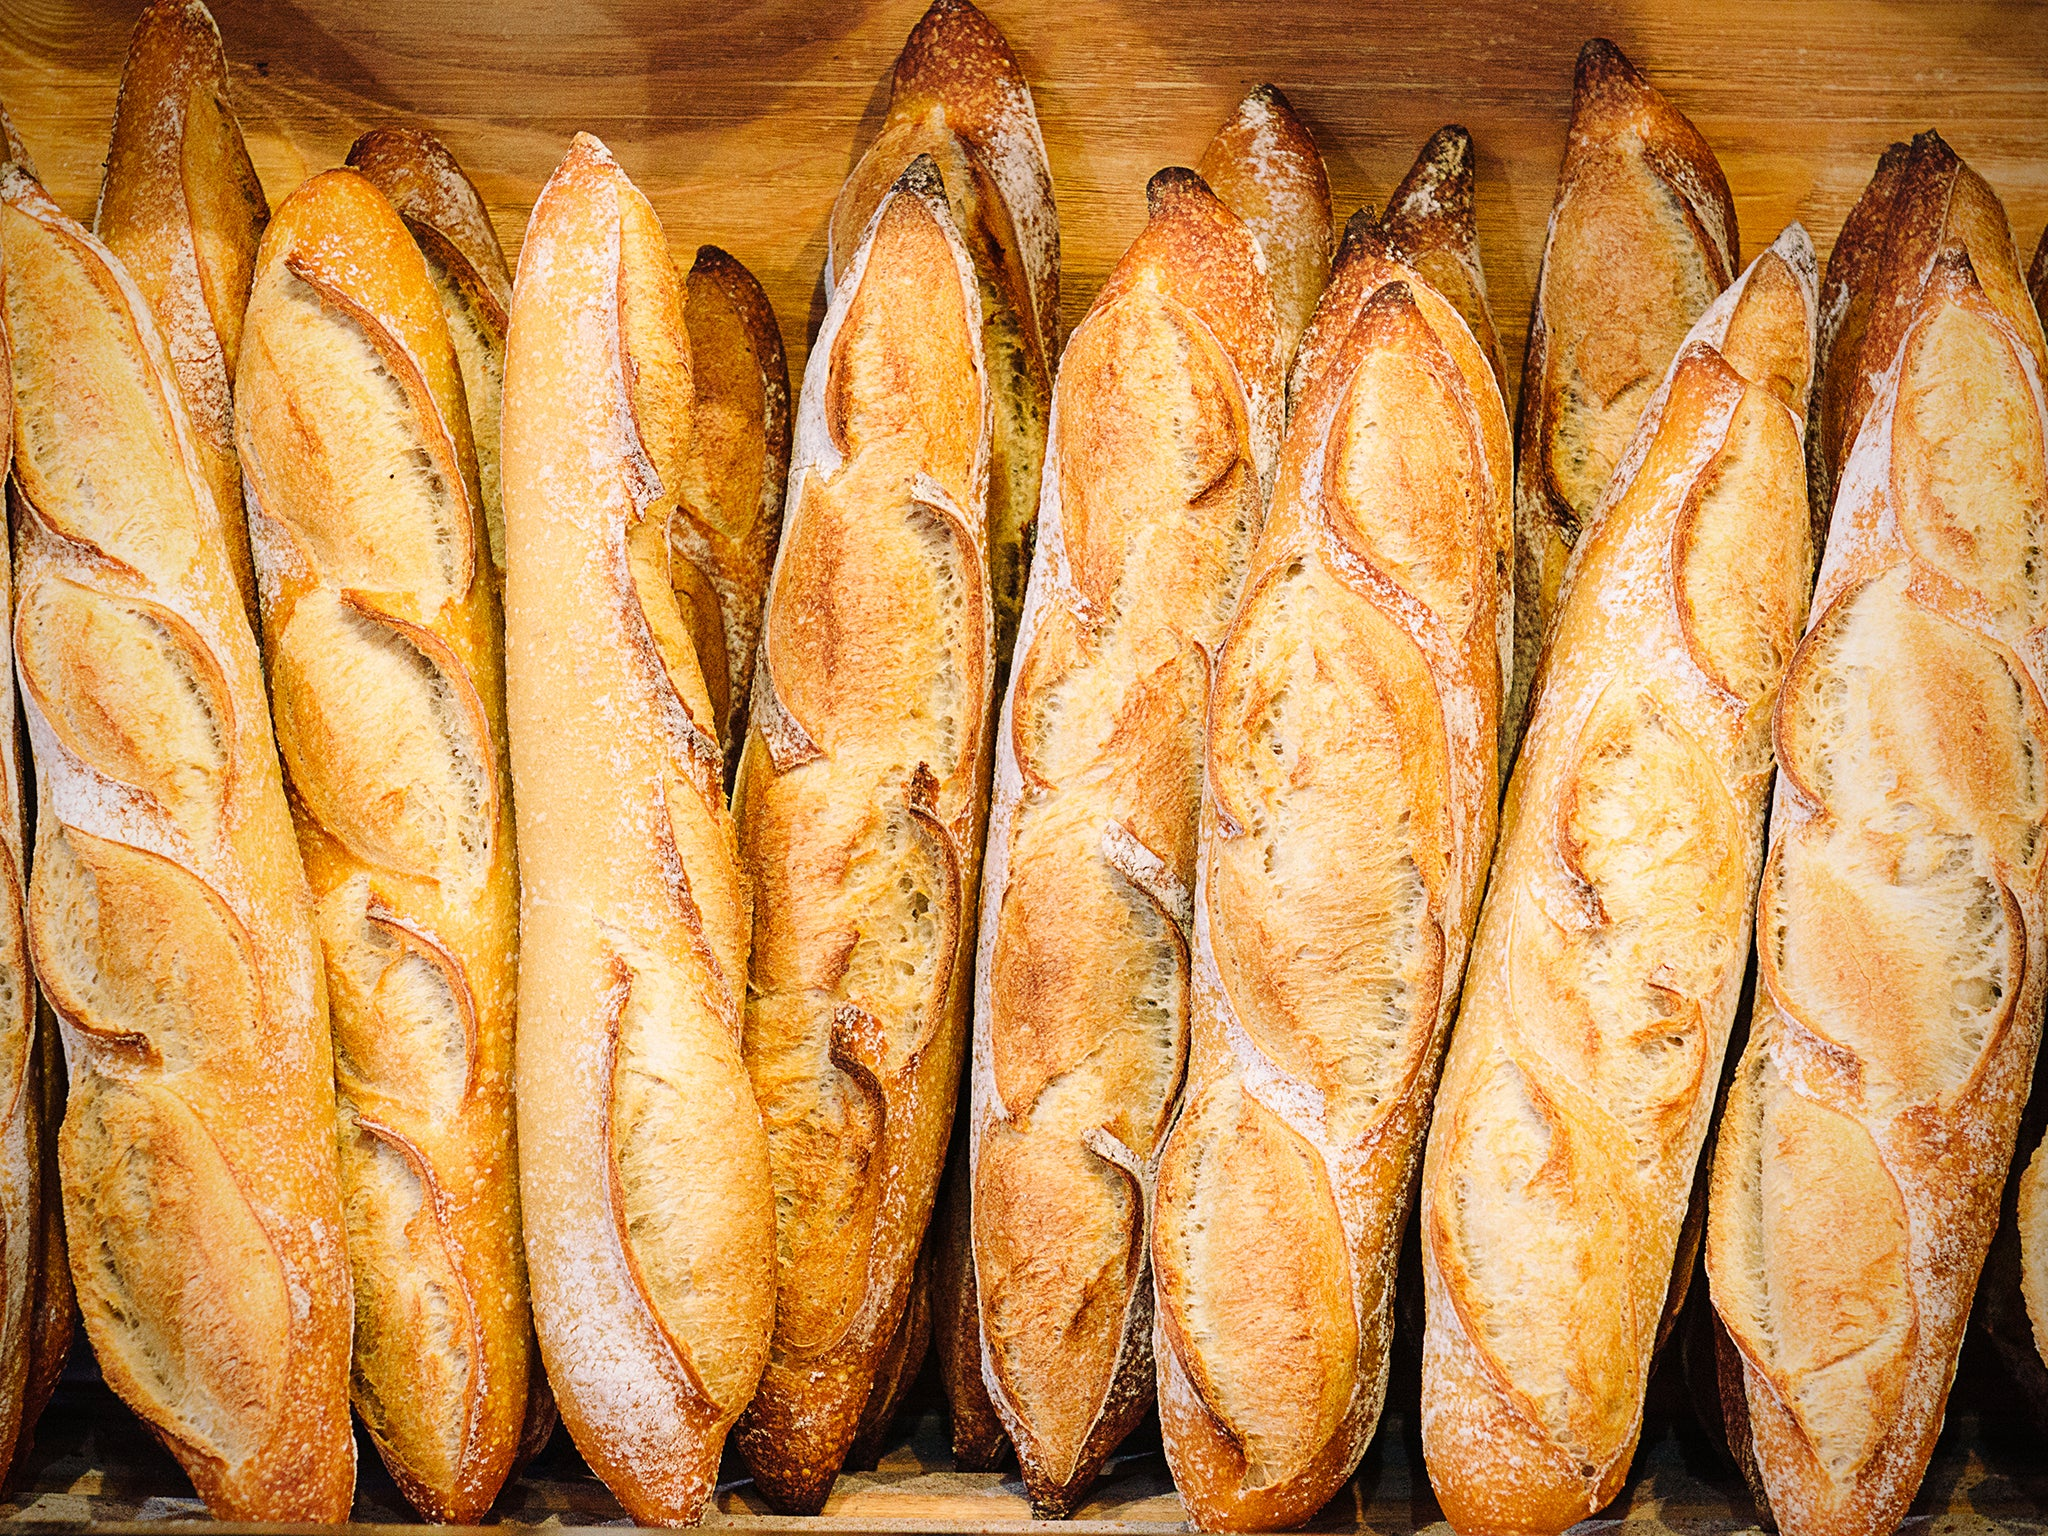 Homes Online French People Losing Appetite For Baguettes The Independent